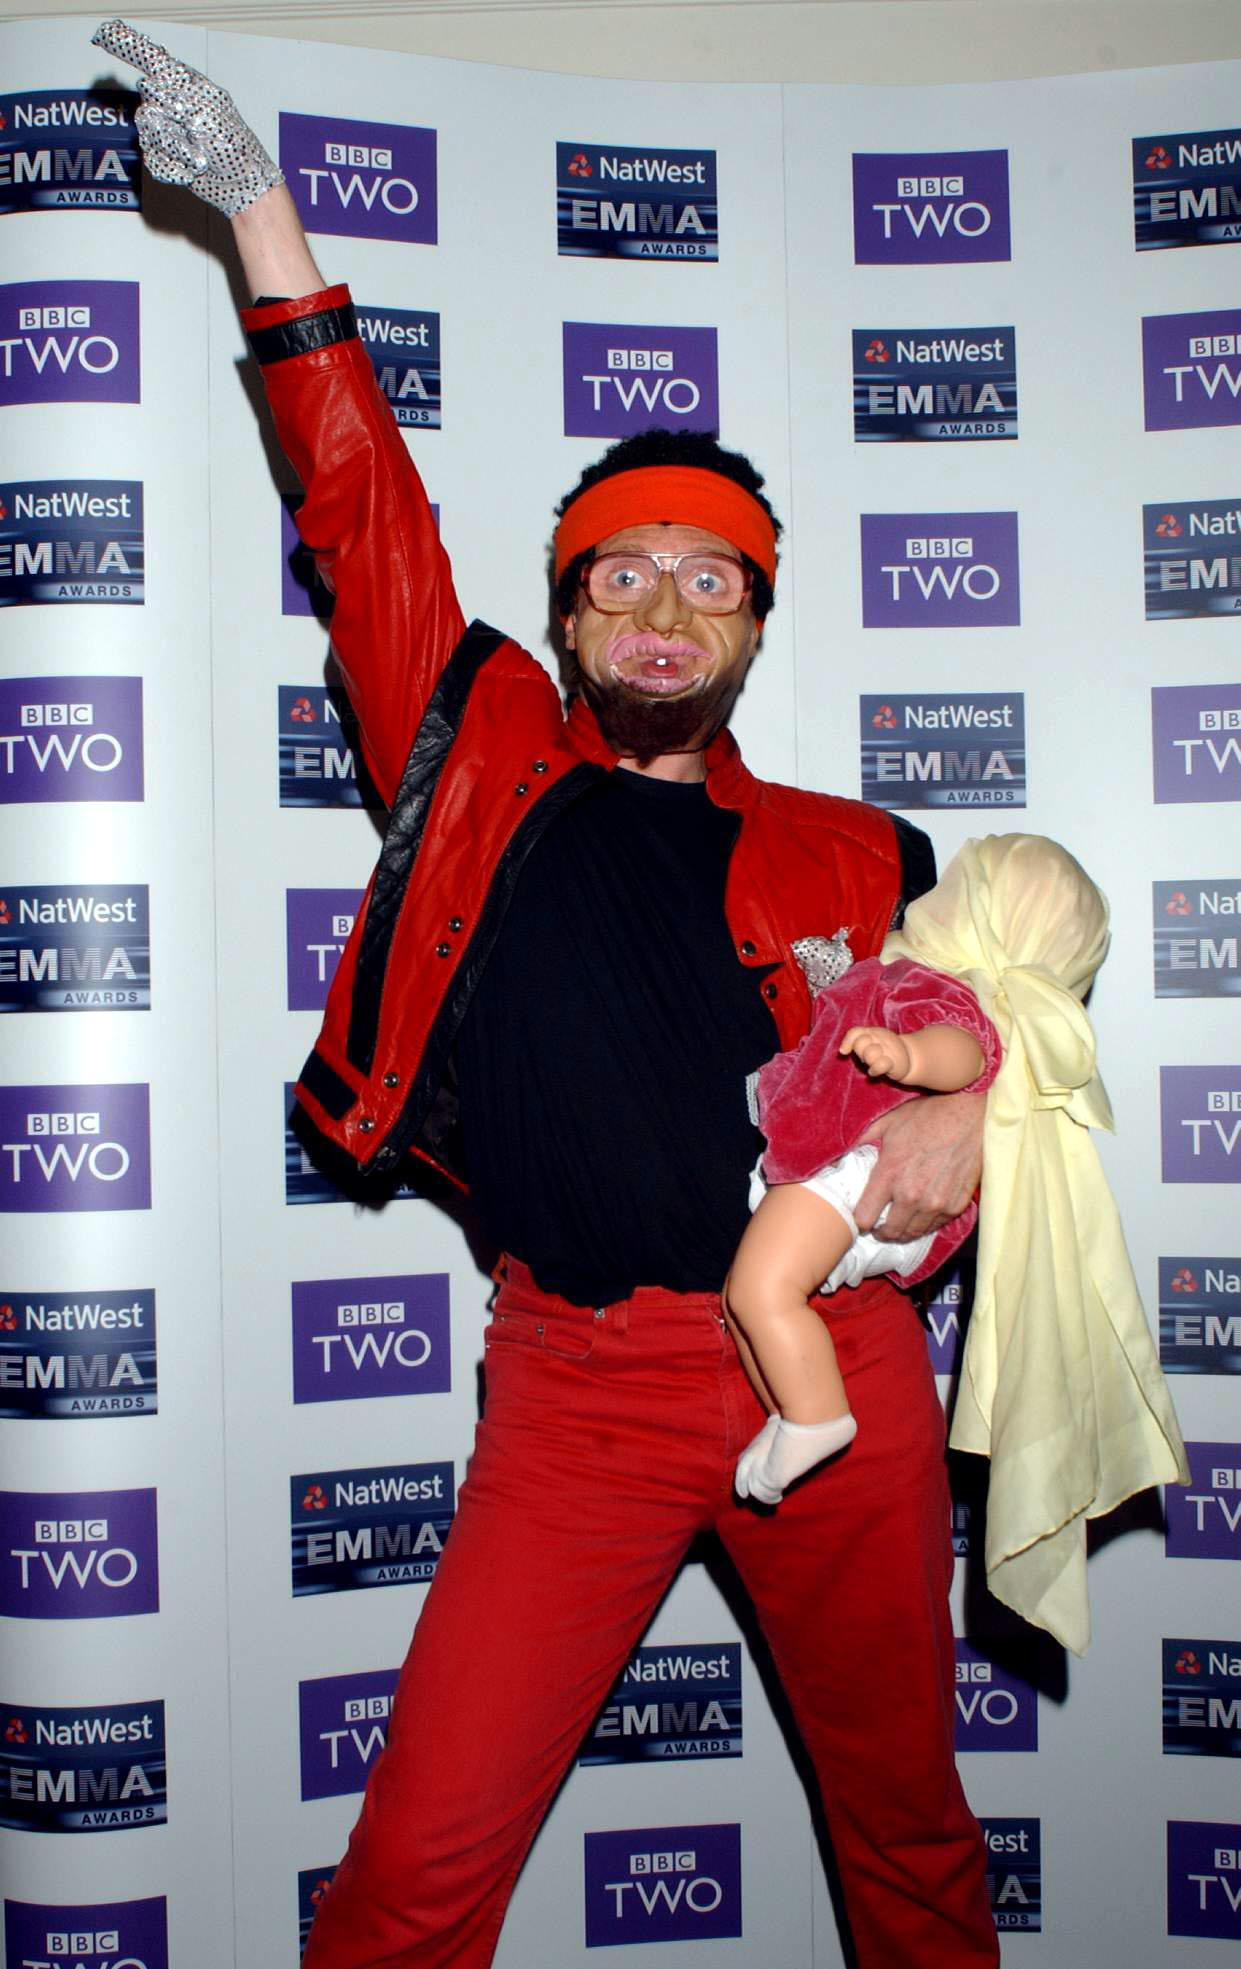 Leigh Francis impersonated black celebrities including Michael Jackson on Bo' Selecta! (Photo by Yui Mok - PA Images/PA Images via Getty Images)